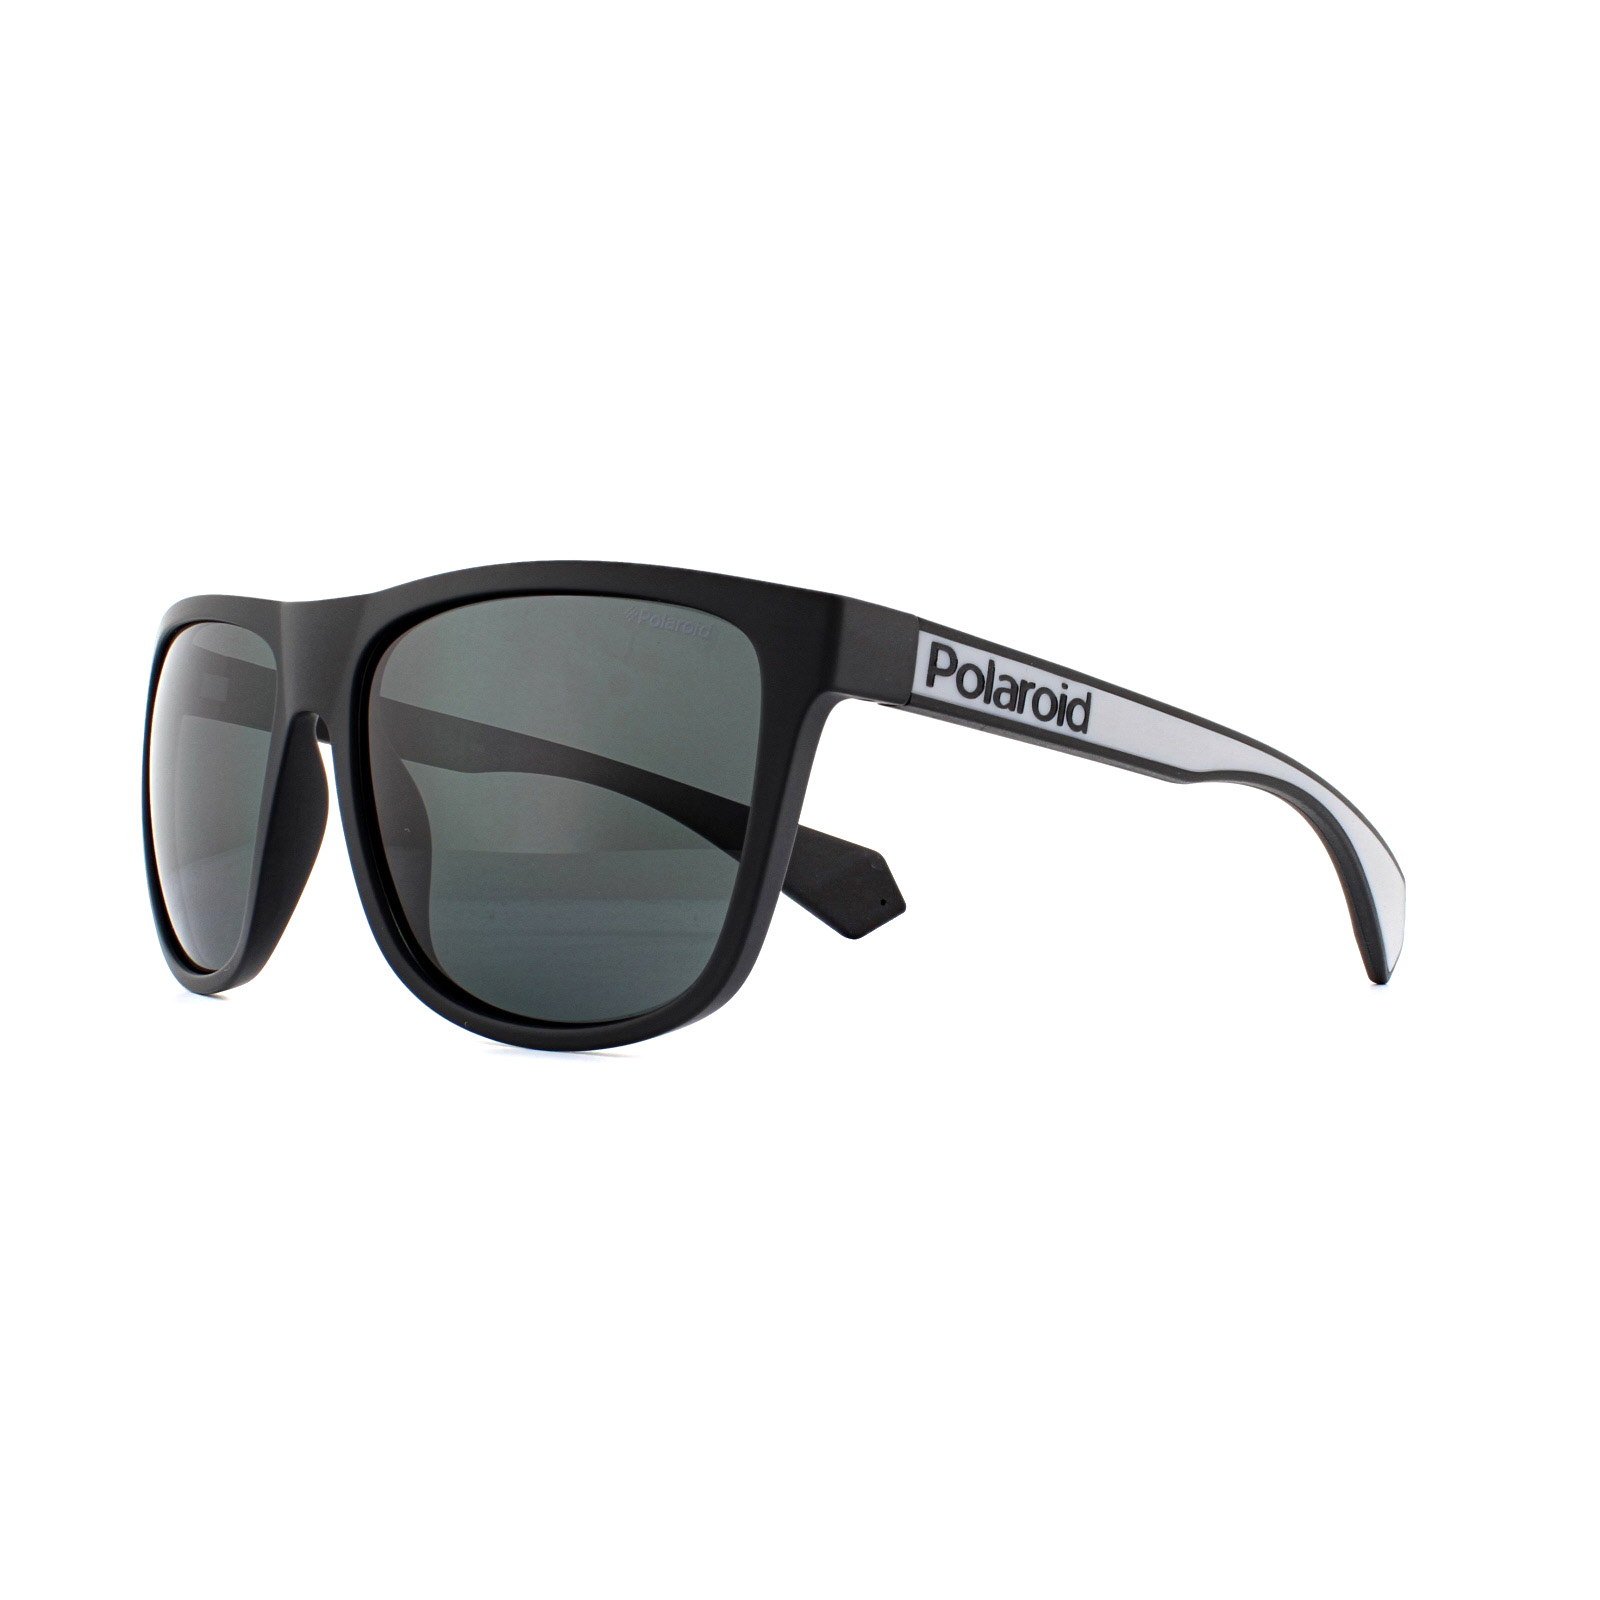 4173731c8fa00 Sentinel Polaroid Sunglasses PLD 6062 S 003 M9 Black Grey Grey Polarized